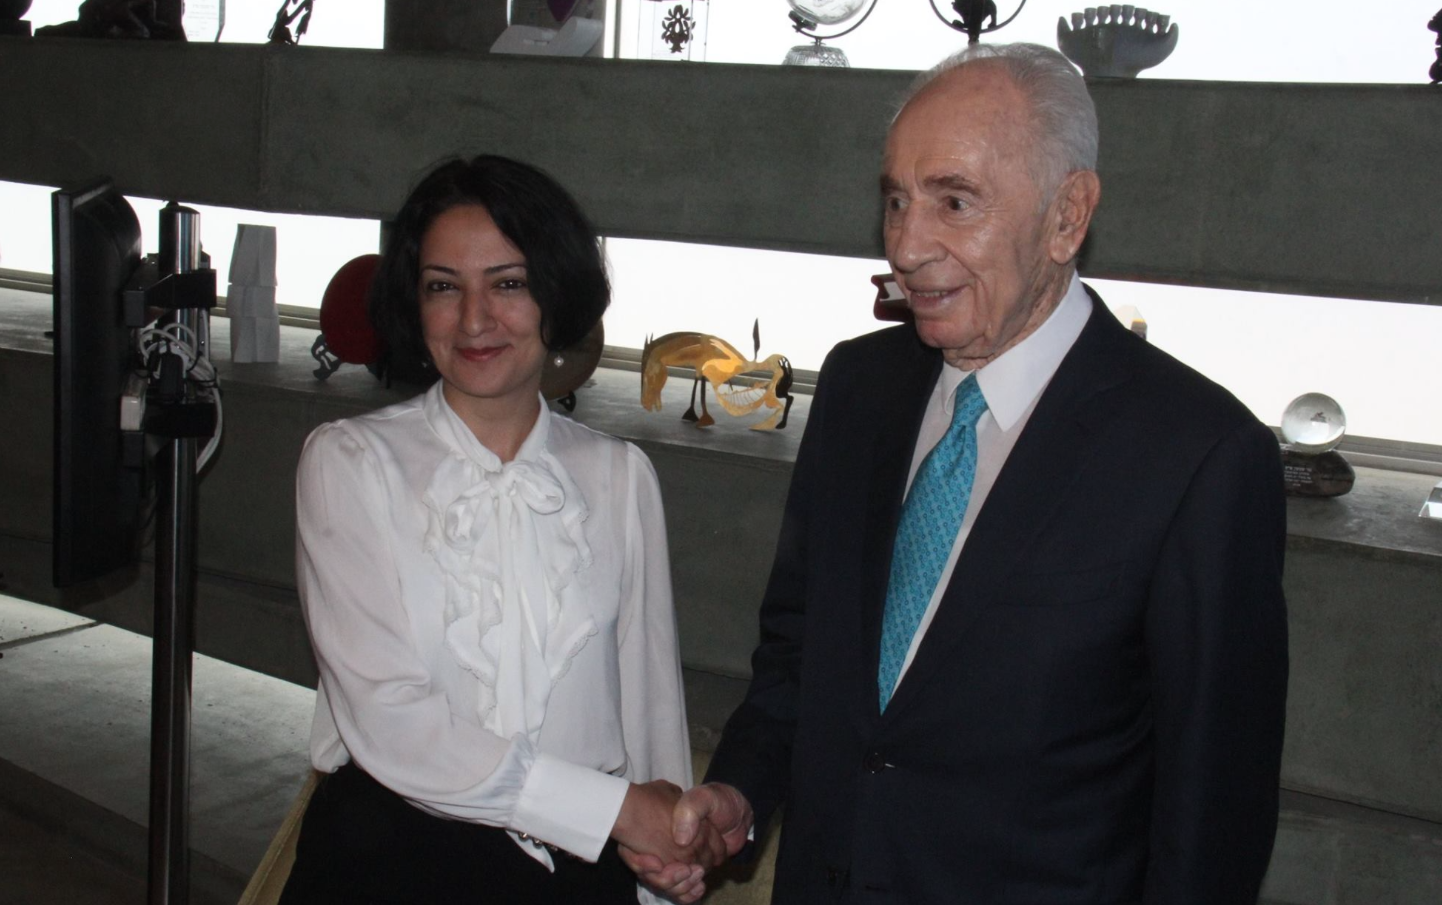 Maryam Faghih visits Shimon Peres in Israel bringing message of peace - Photo: The Peres Center For Peace